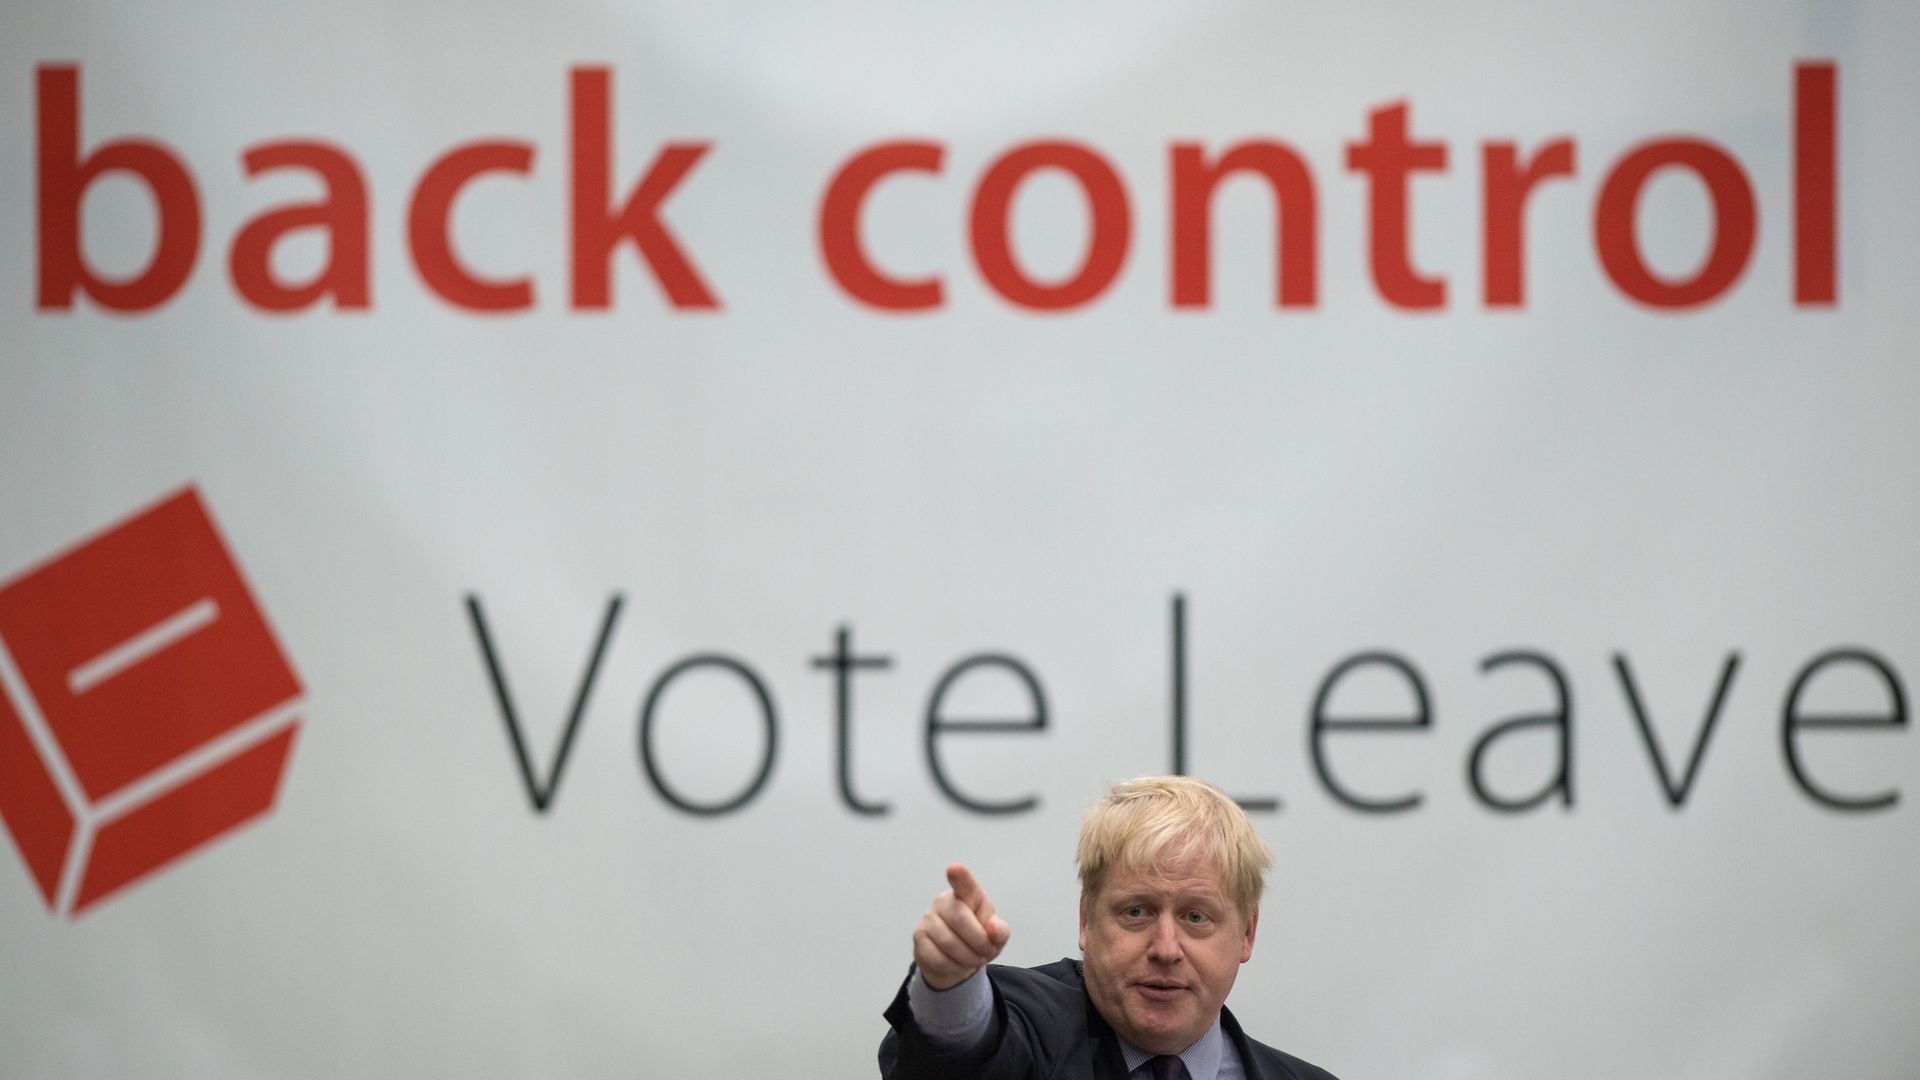 Then mayor of London, Boris Johnson, delivers a speech during a Vote Leave campaign event at the Europa Worldwide freight company in Dartford, Kent - Credit: PA